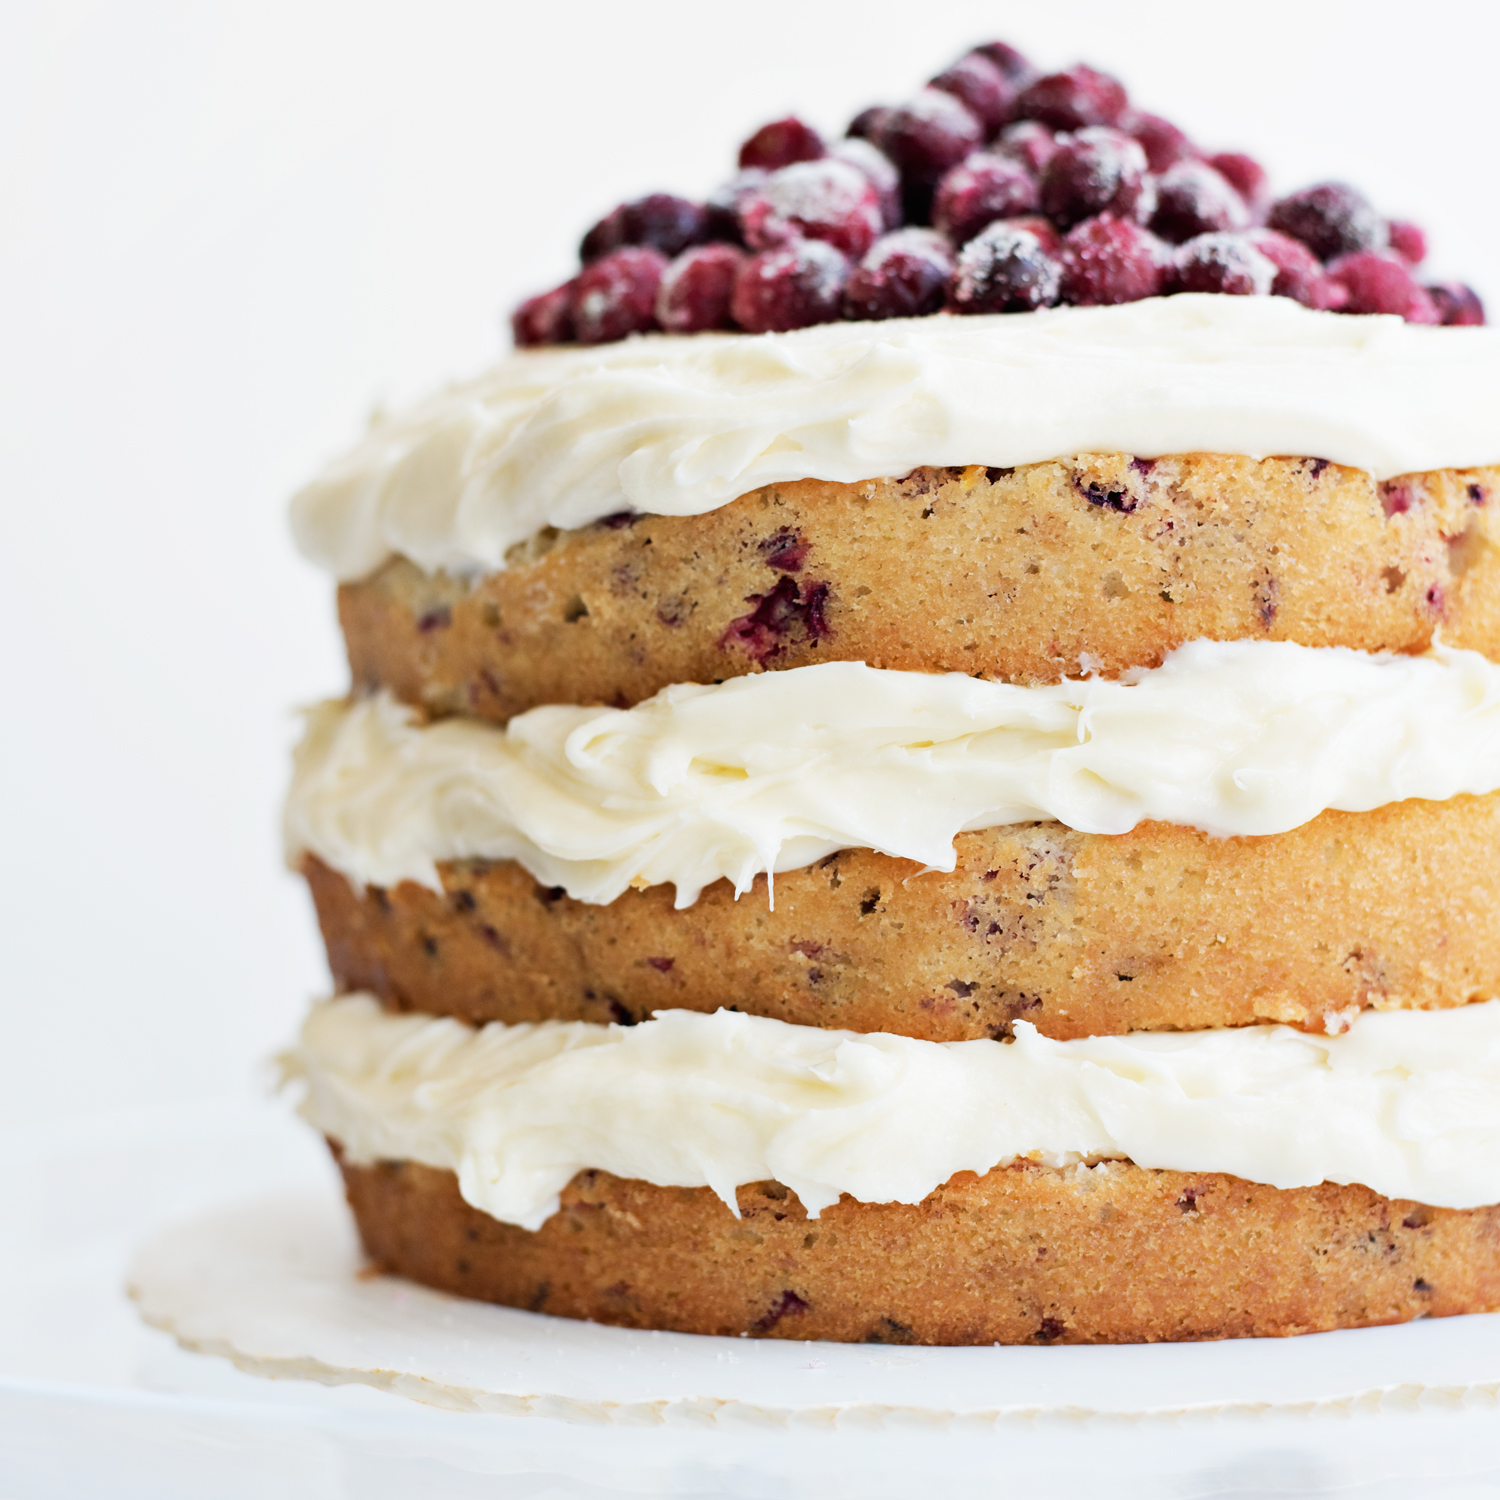 Cranberry Orange Holiday Cake Recipe - absolutely gorgeous!